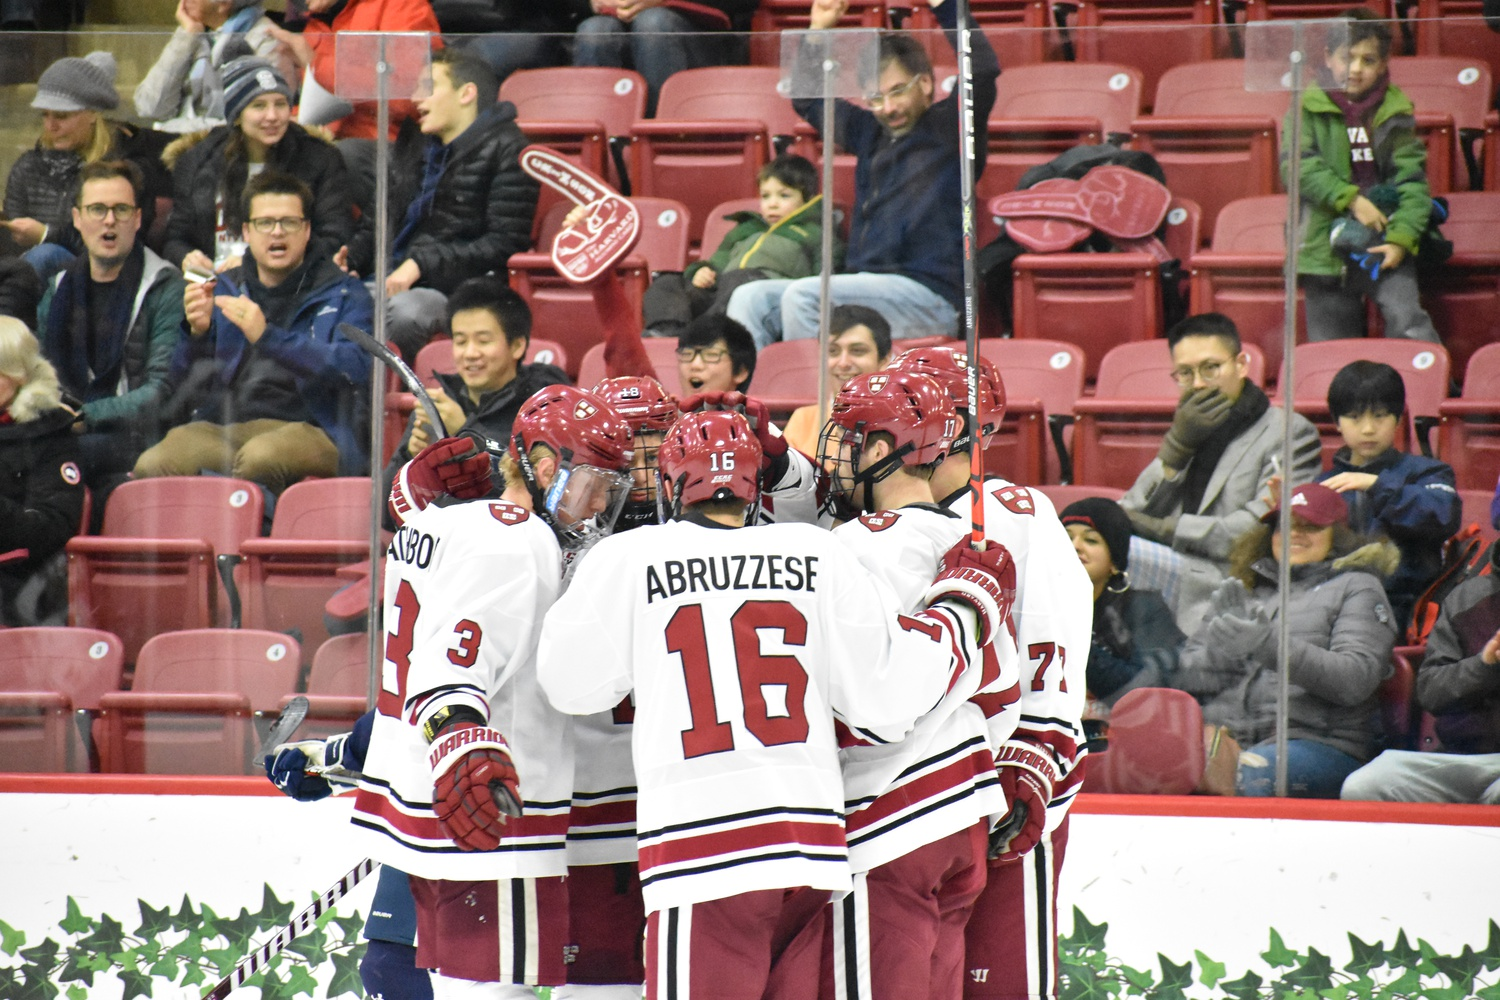 A consistent strength for the Crimson has been its top line. Initially made up of its top three scorers, Dornbach, Drury, and Abruzzese, the coaching staff has taken to replacing Dornbach with rookie John Farinacci when making adjustments.